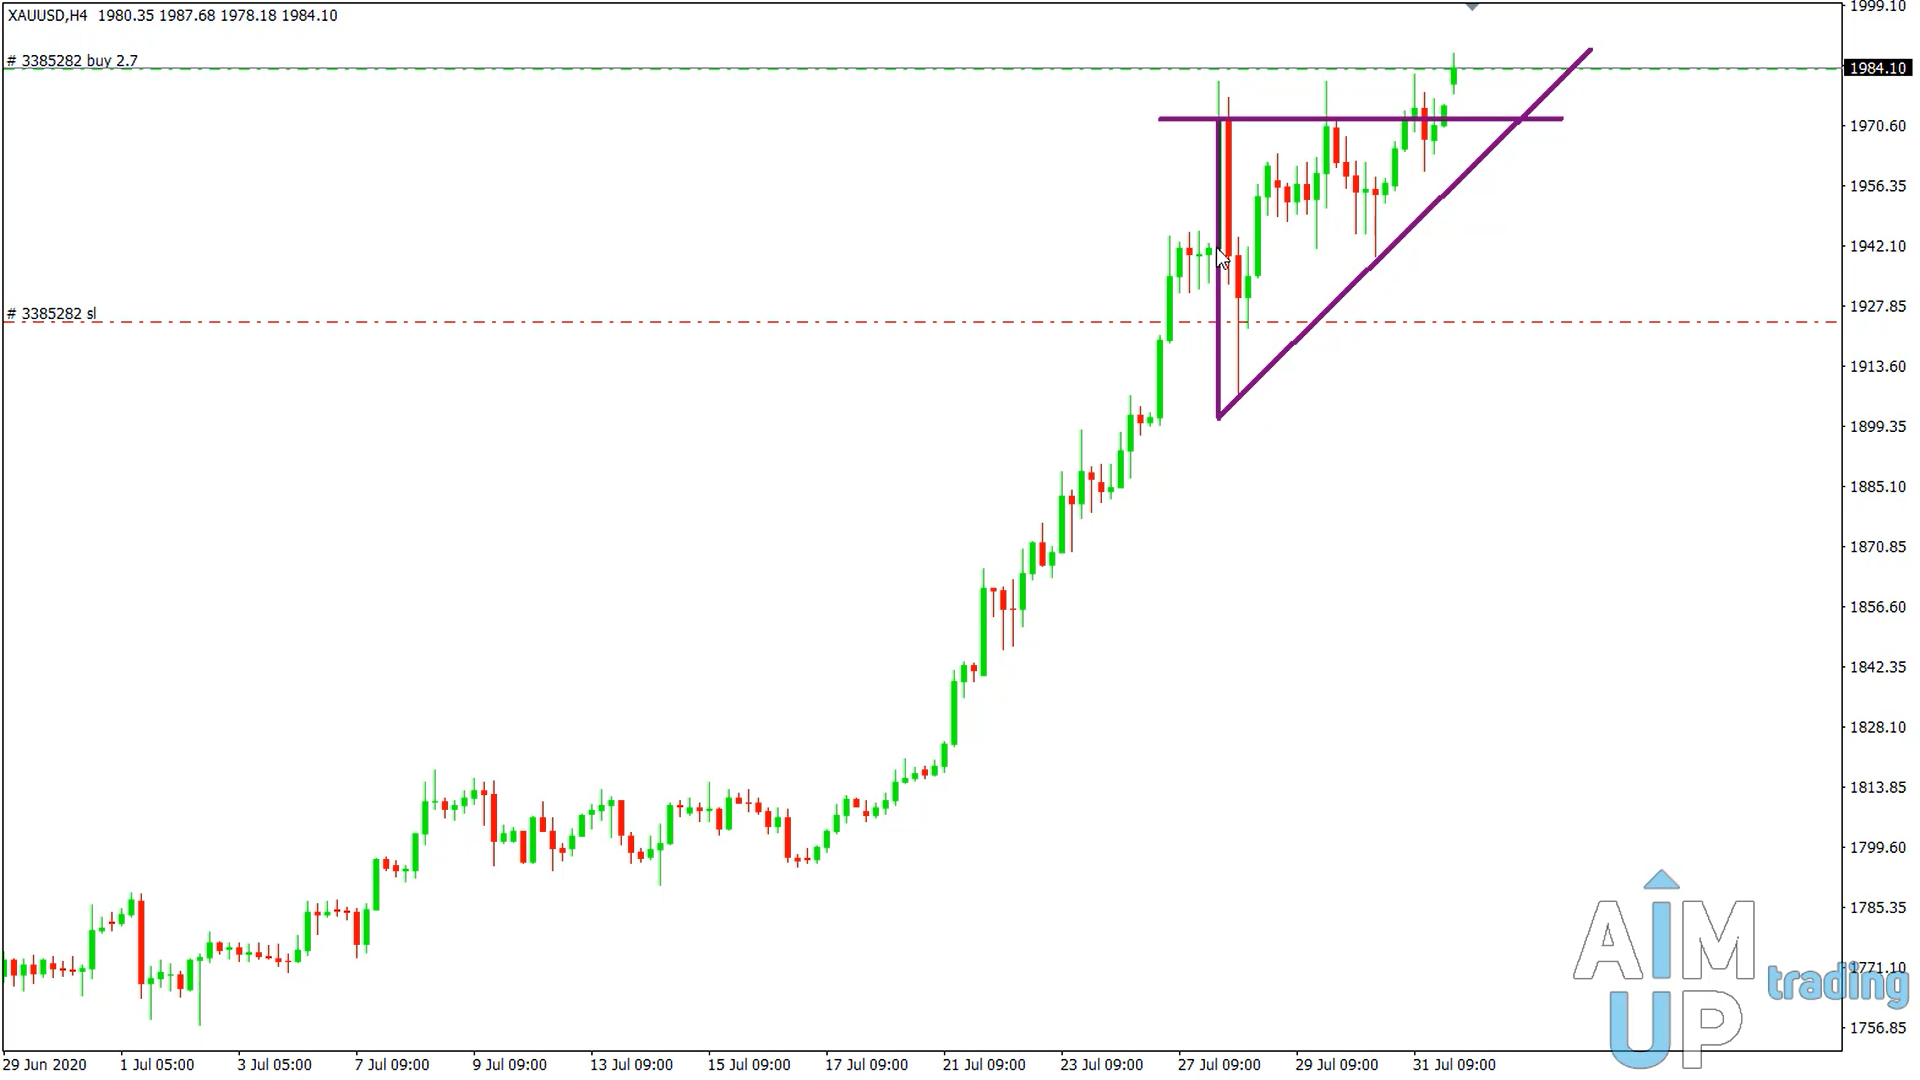 Formation of a triangle formation in gold